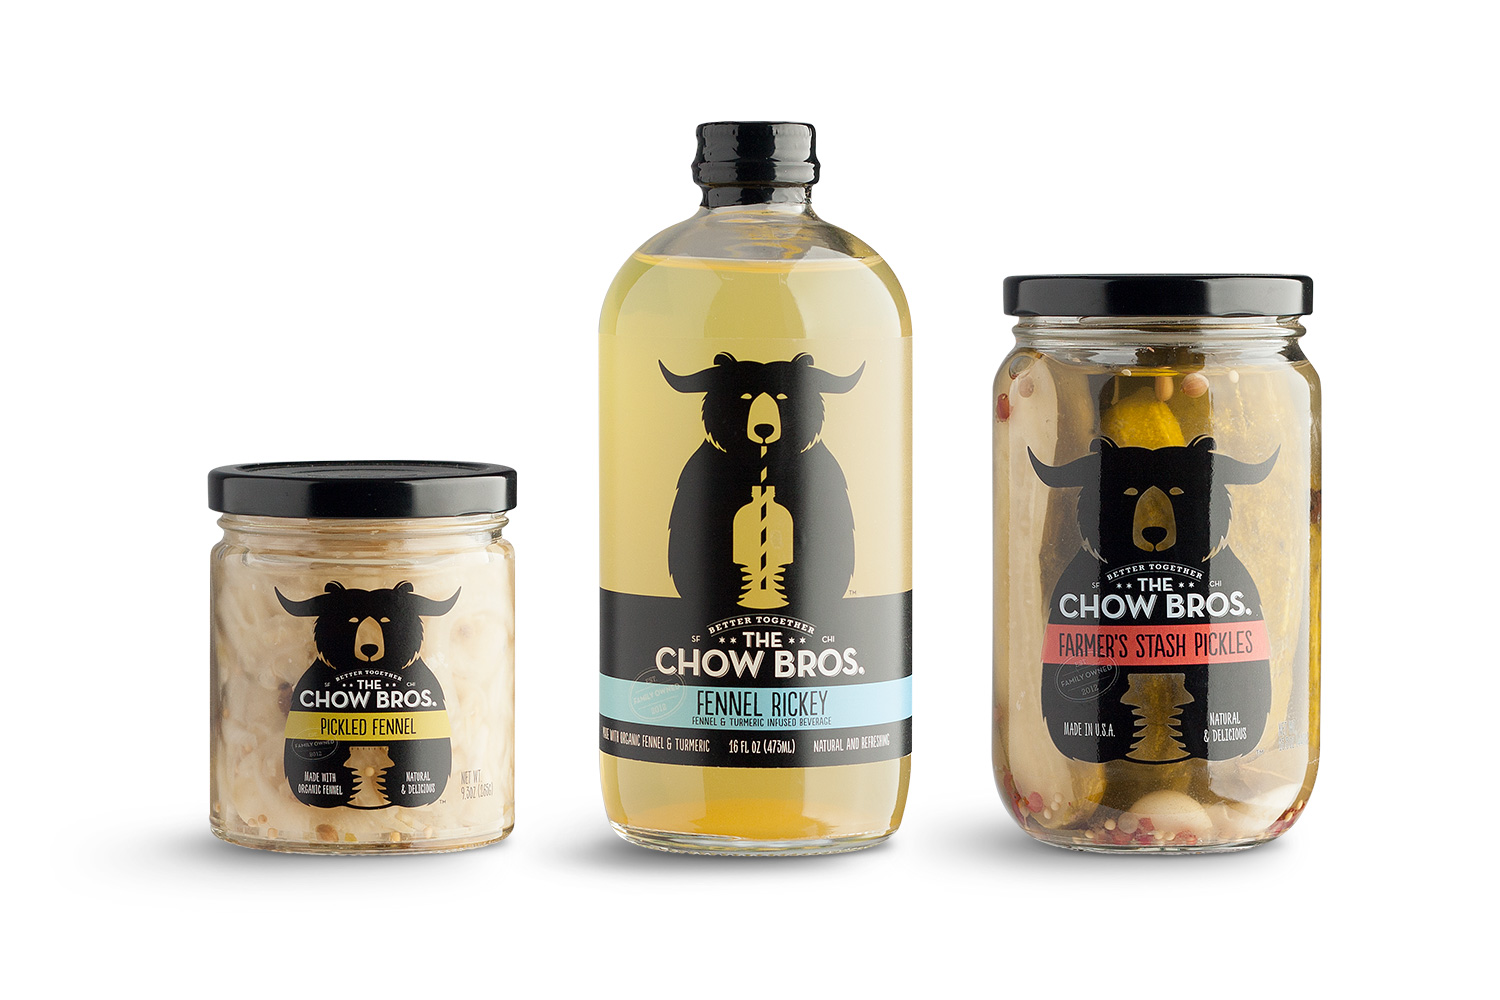 The Chow Bros Packaging Design